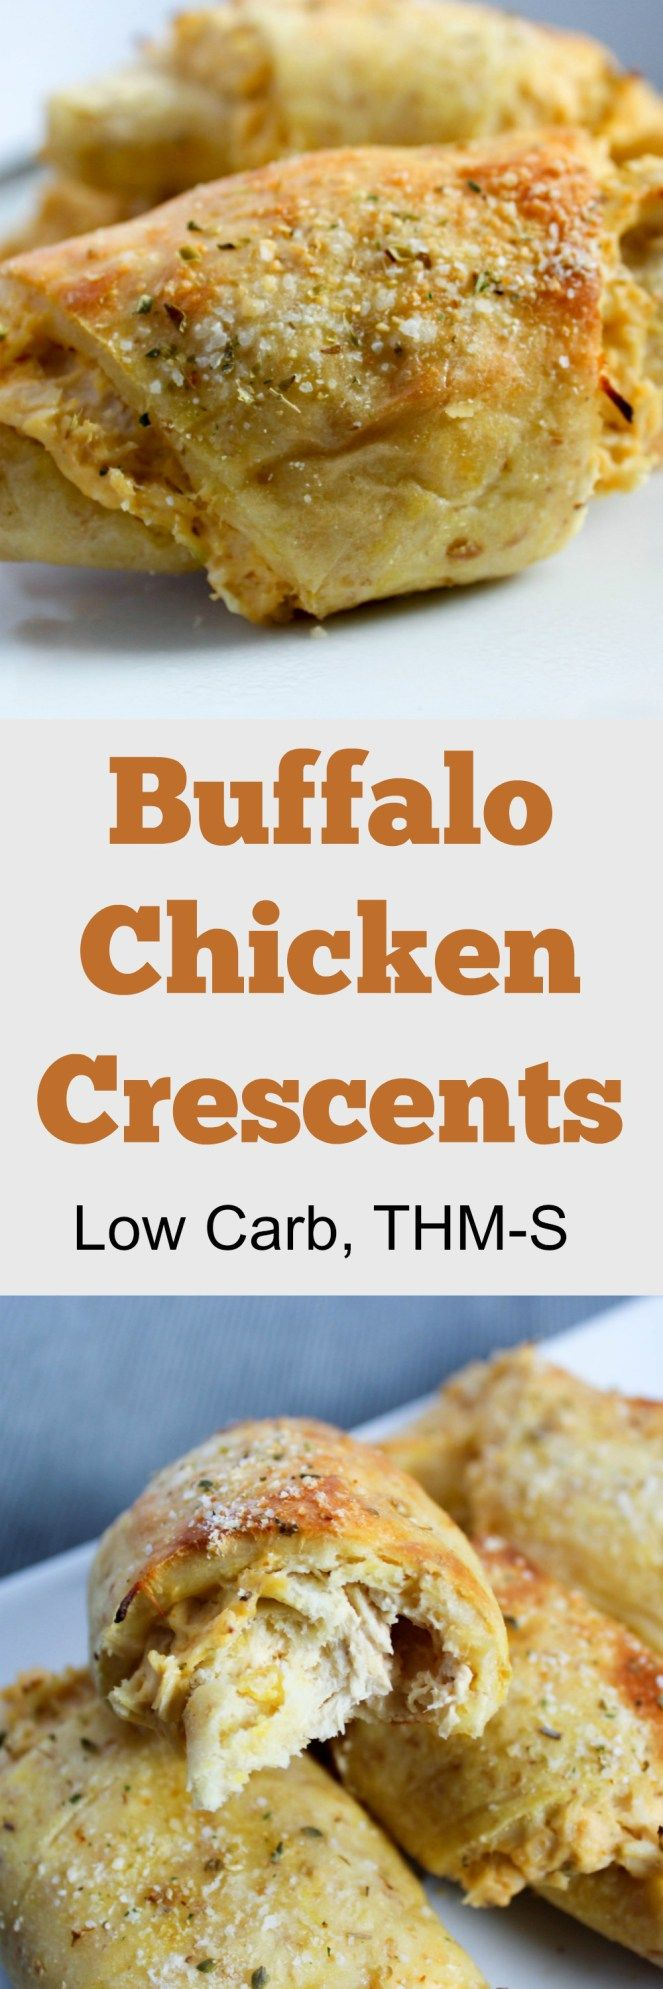 Buffalo Chicken Crescents (Low Carb, THM-S)